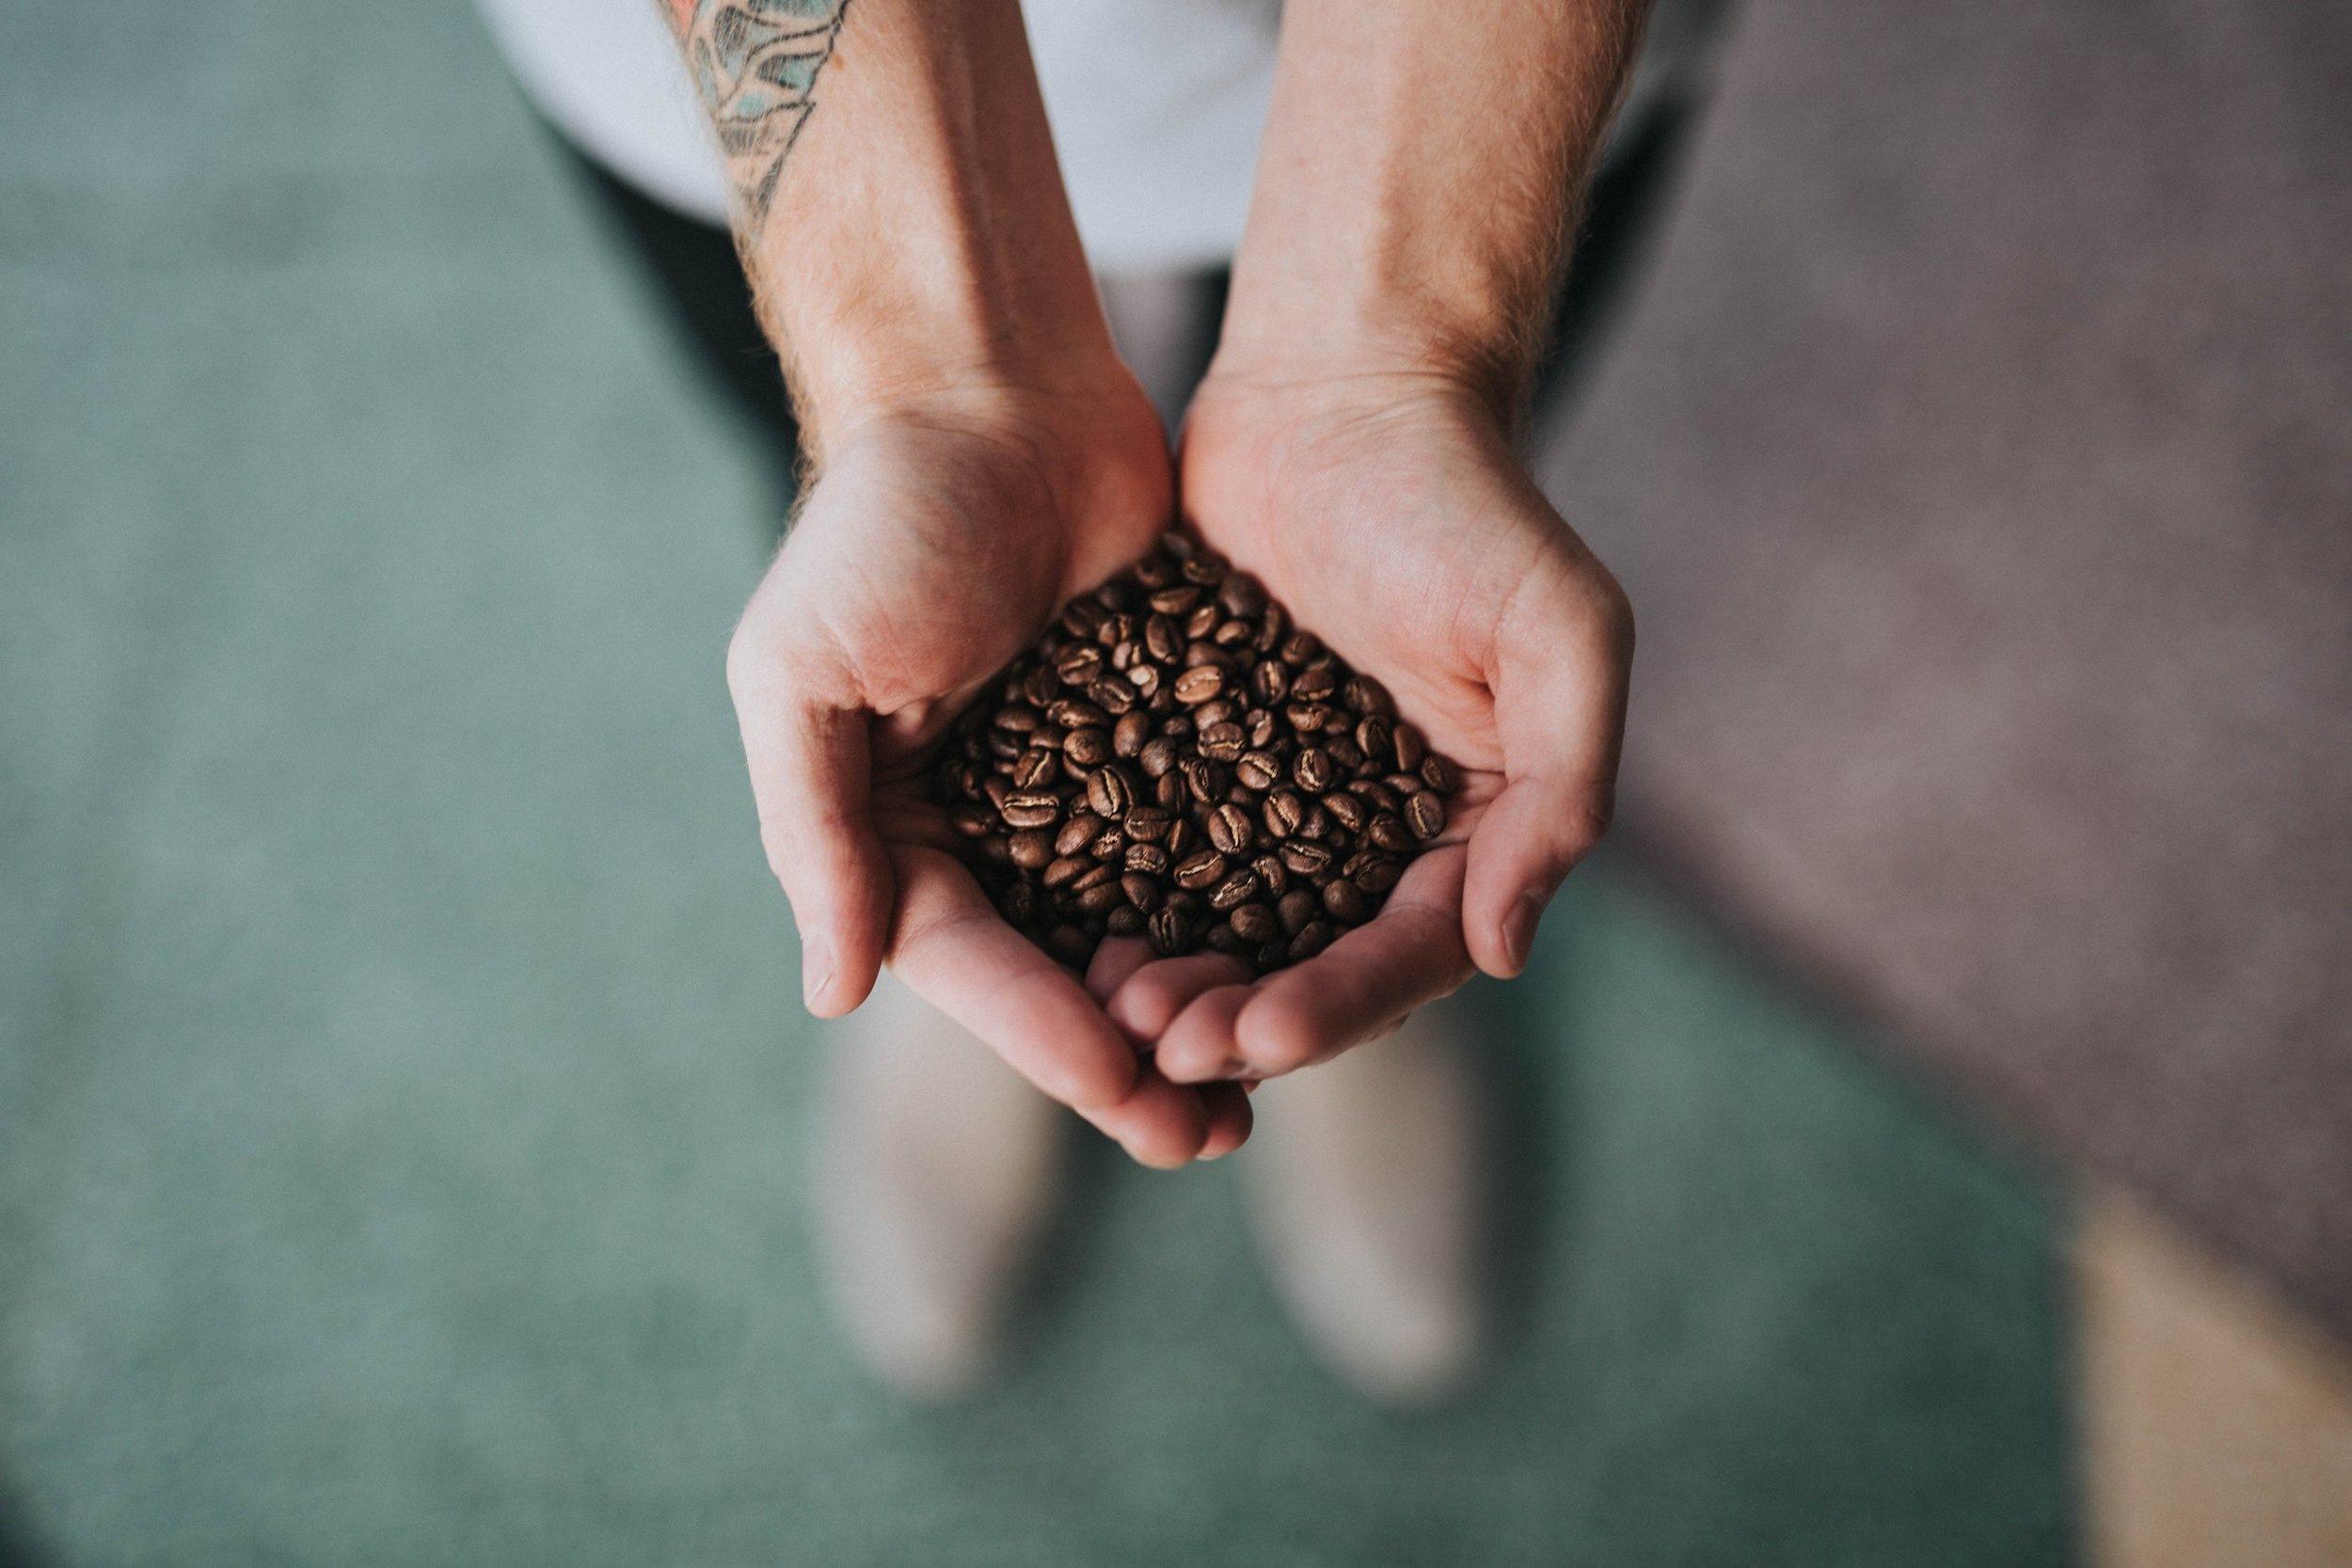 Puerto Rican Coffee - 80% of coffee farms were destroyed by Maria. You can support local coffee farmers by purchasing a bag of Puerto Rican coffee.Shop for coffee